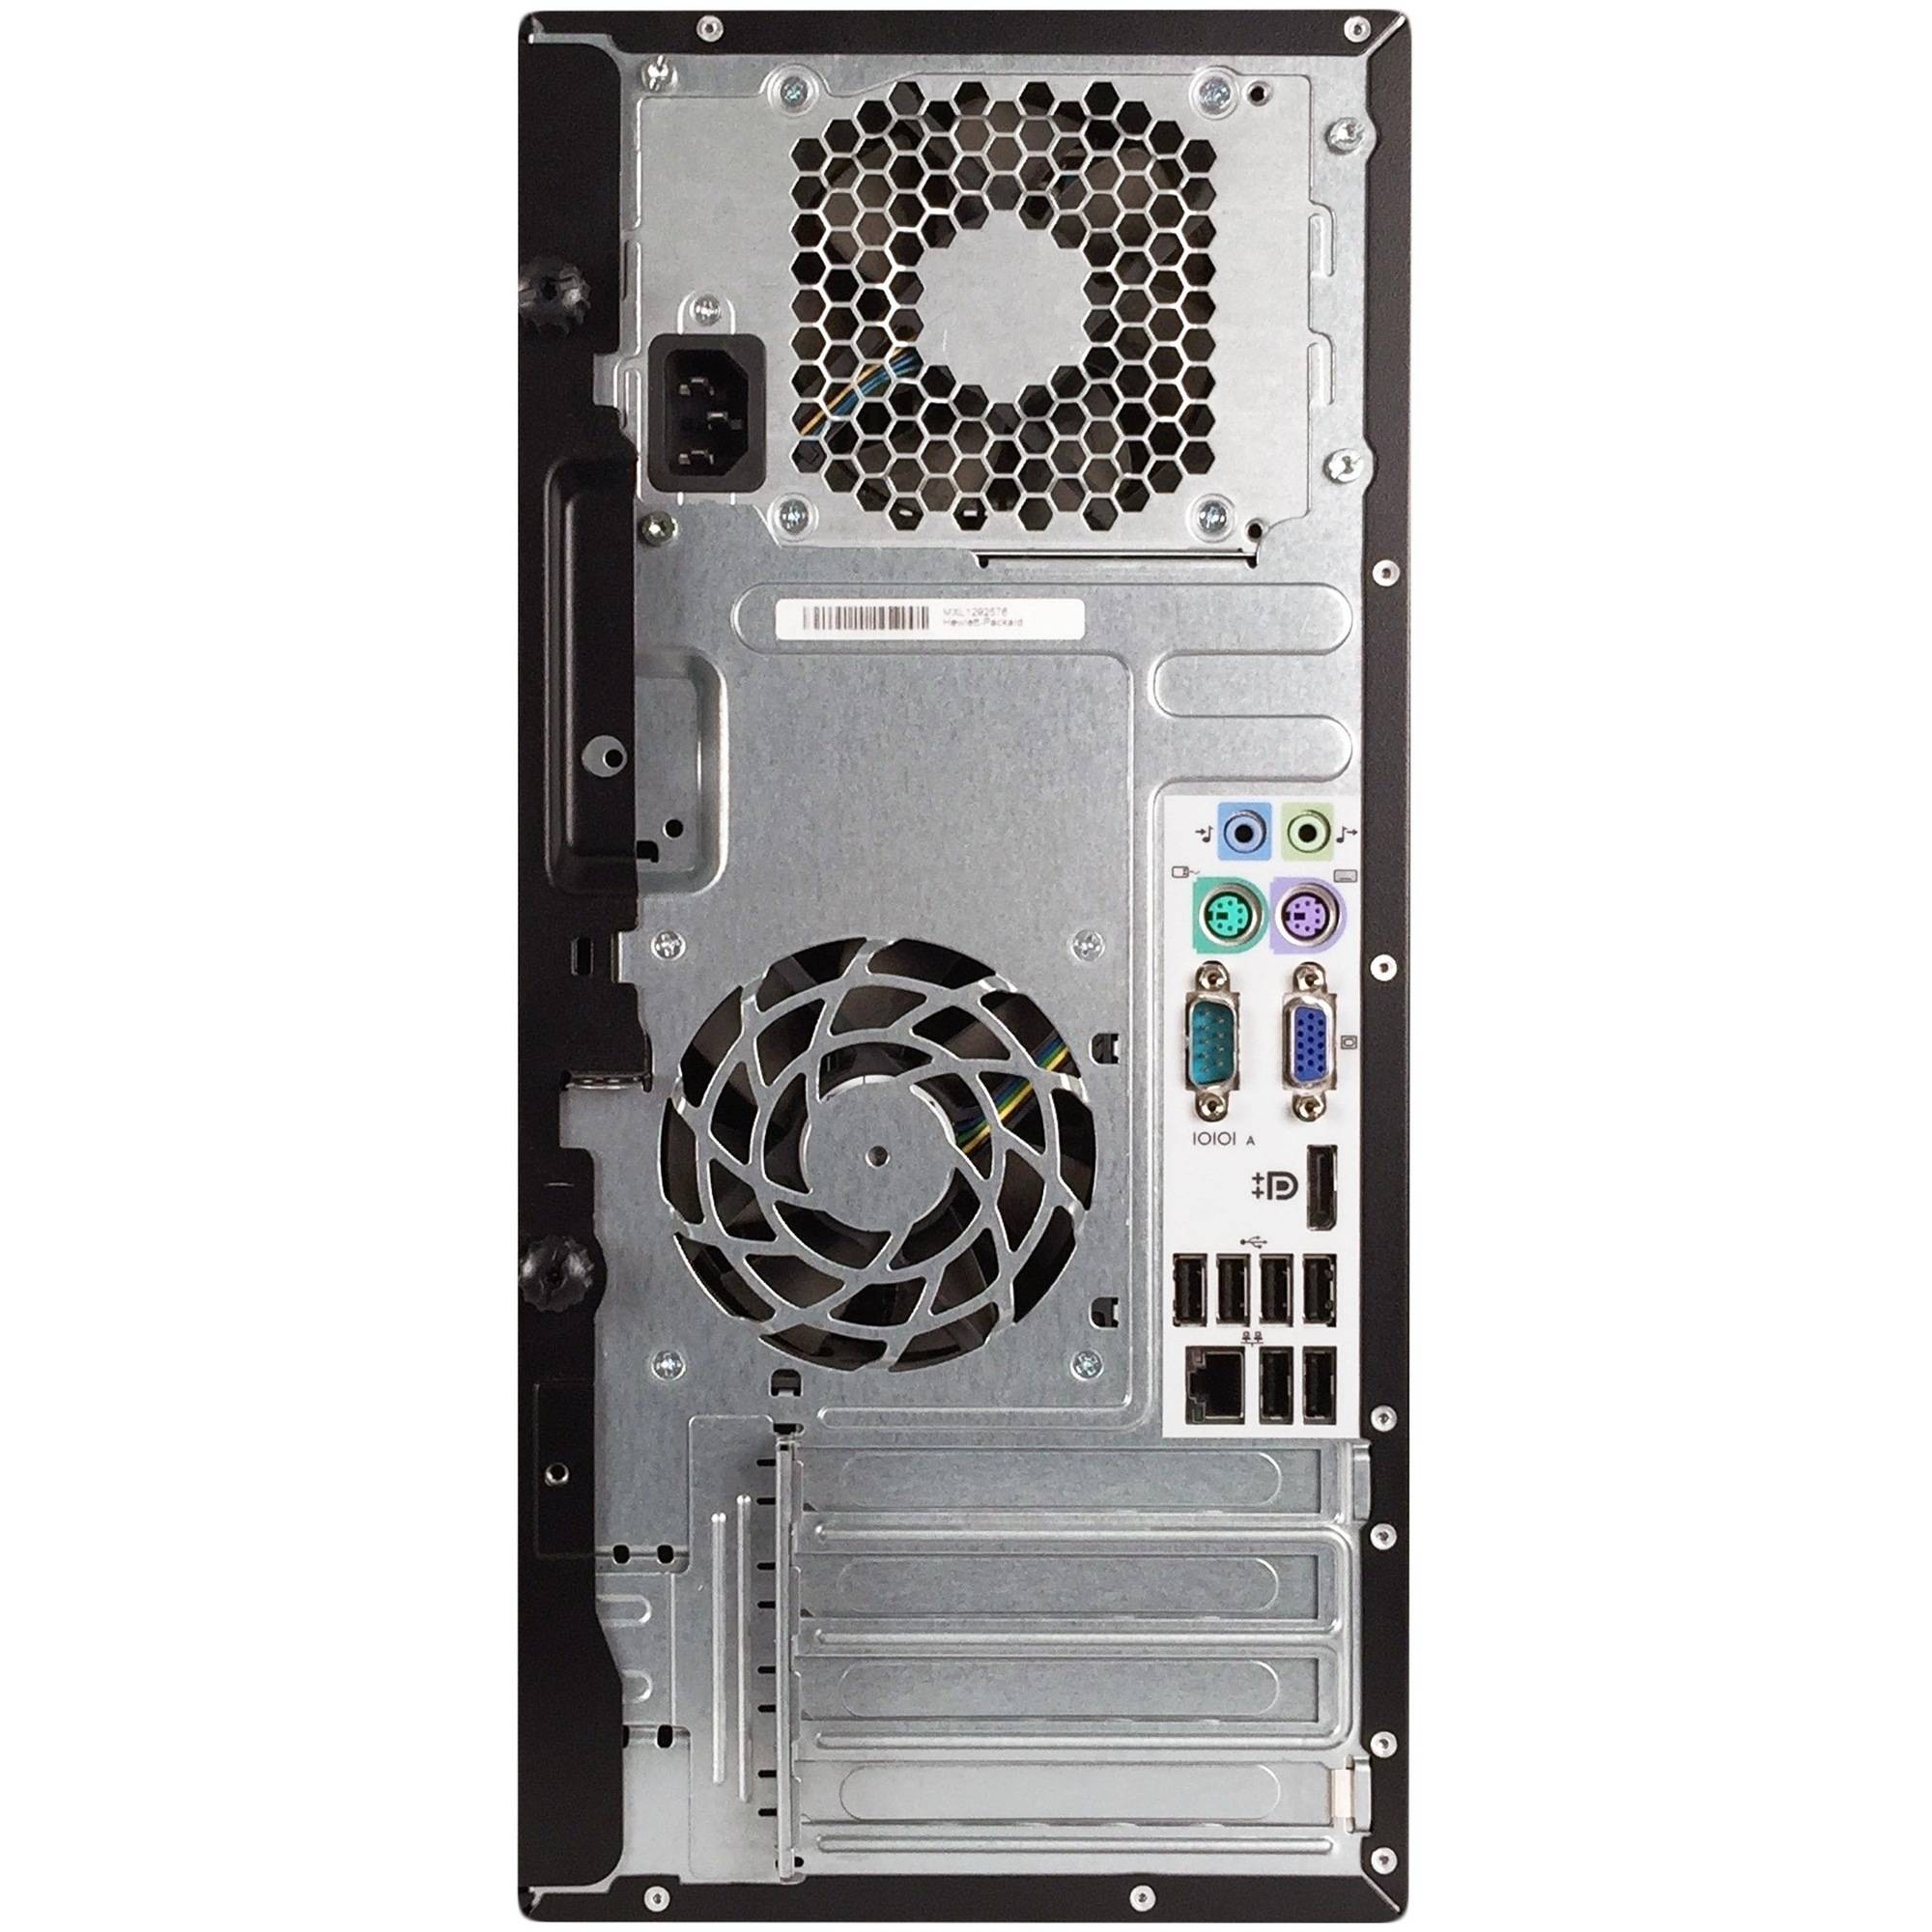 Refurbished HP Pro 6300 Tower Desktop PC with Intel Core i5-3470 Processor,  16GB Memory, 2TB Hard Drive and Windows 10 Professional (Monitor Not